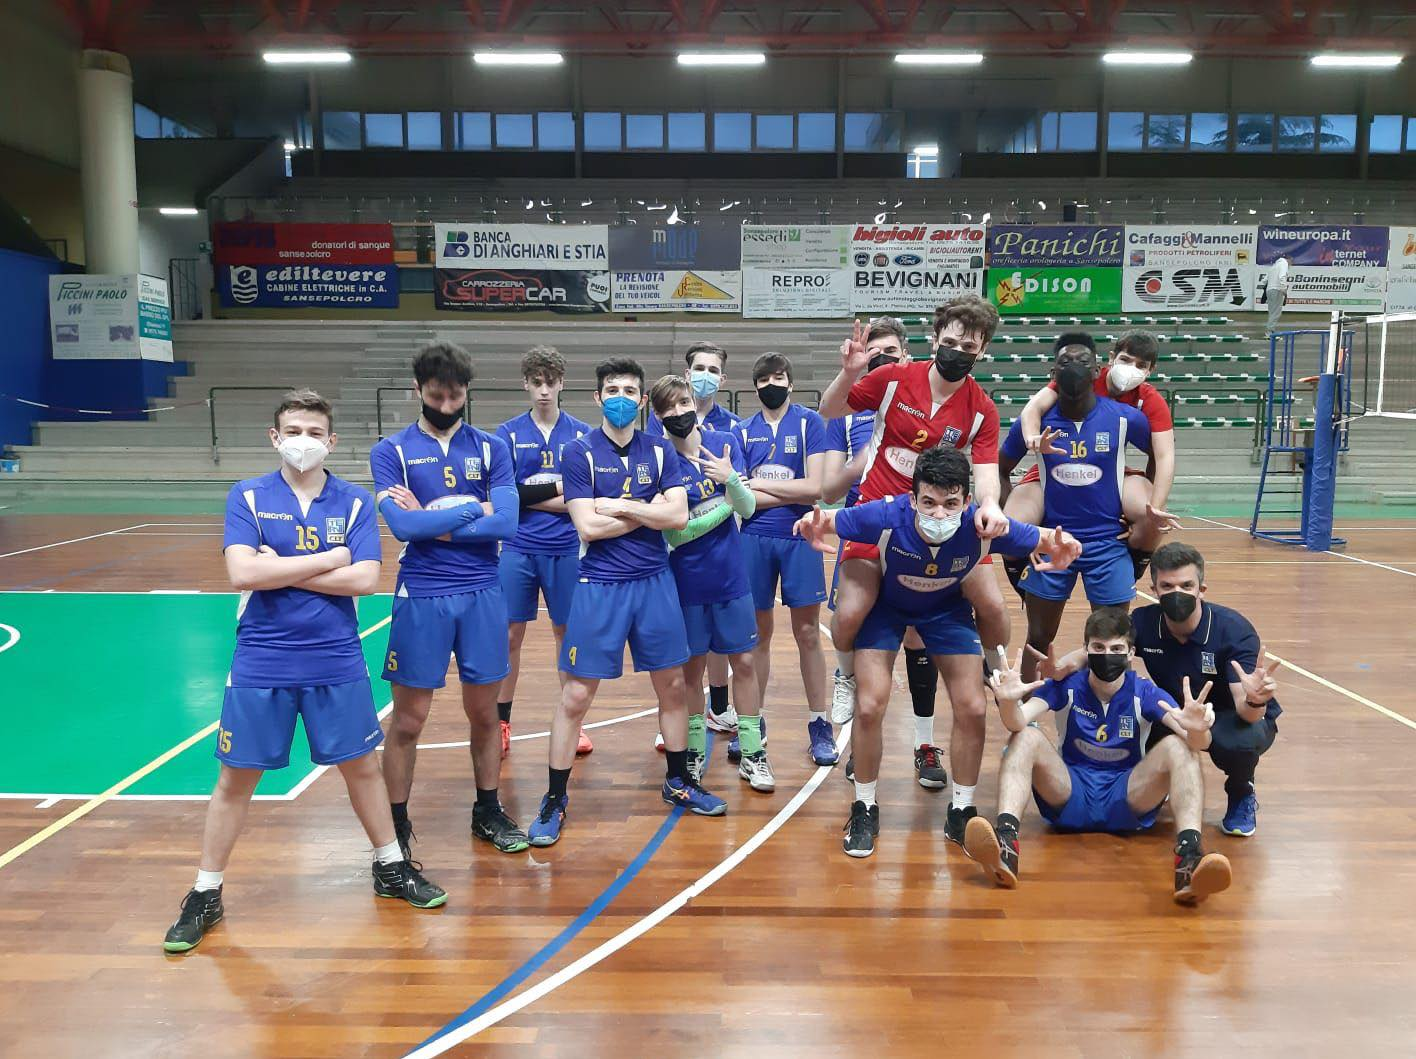 Volley: bene l'Under 17, alti e bassi per la Serie C